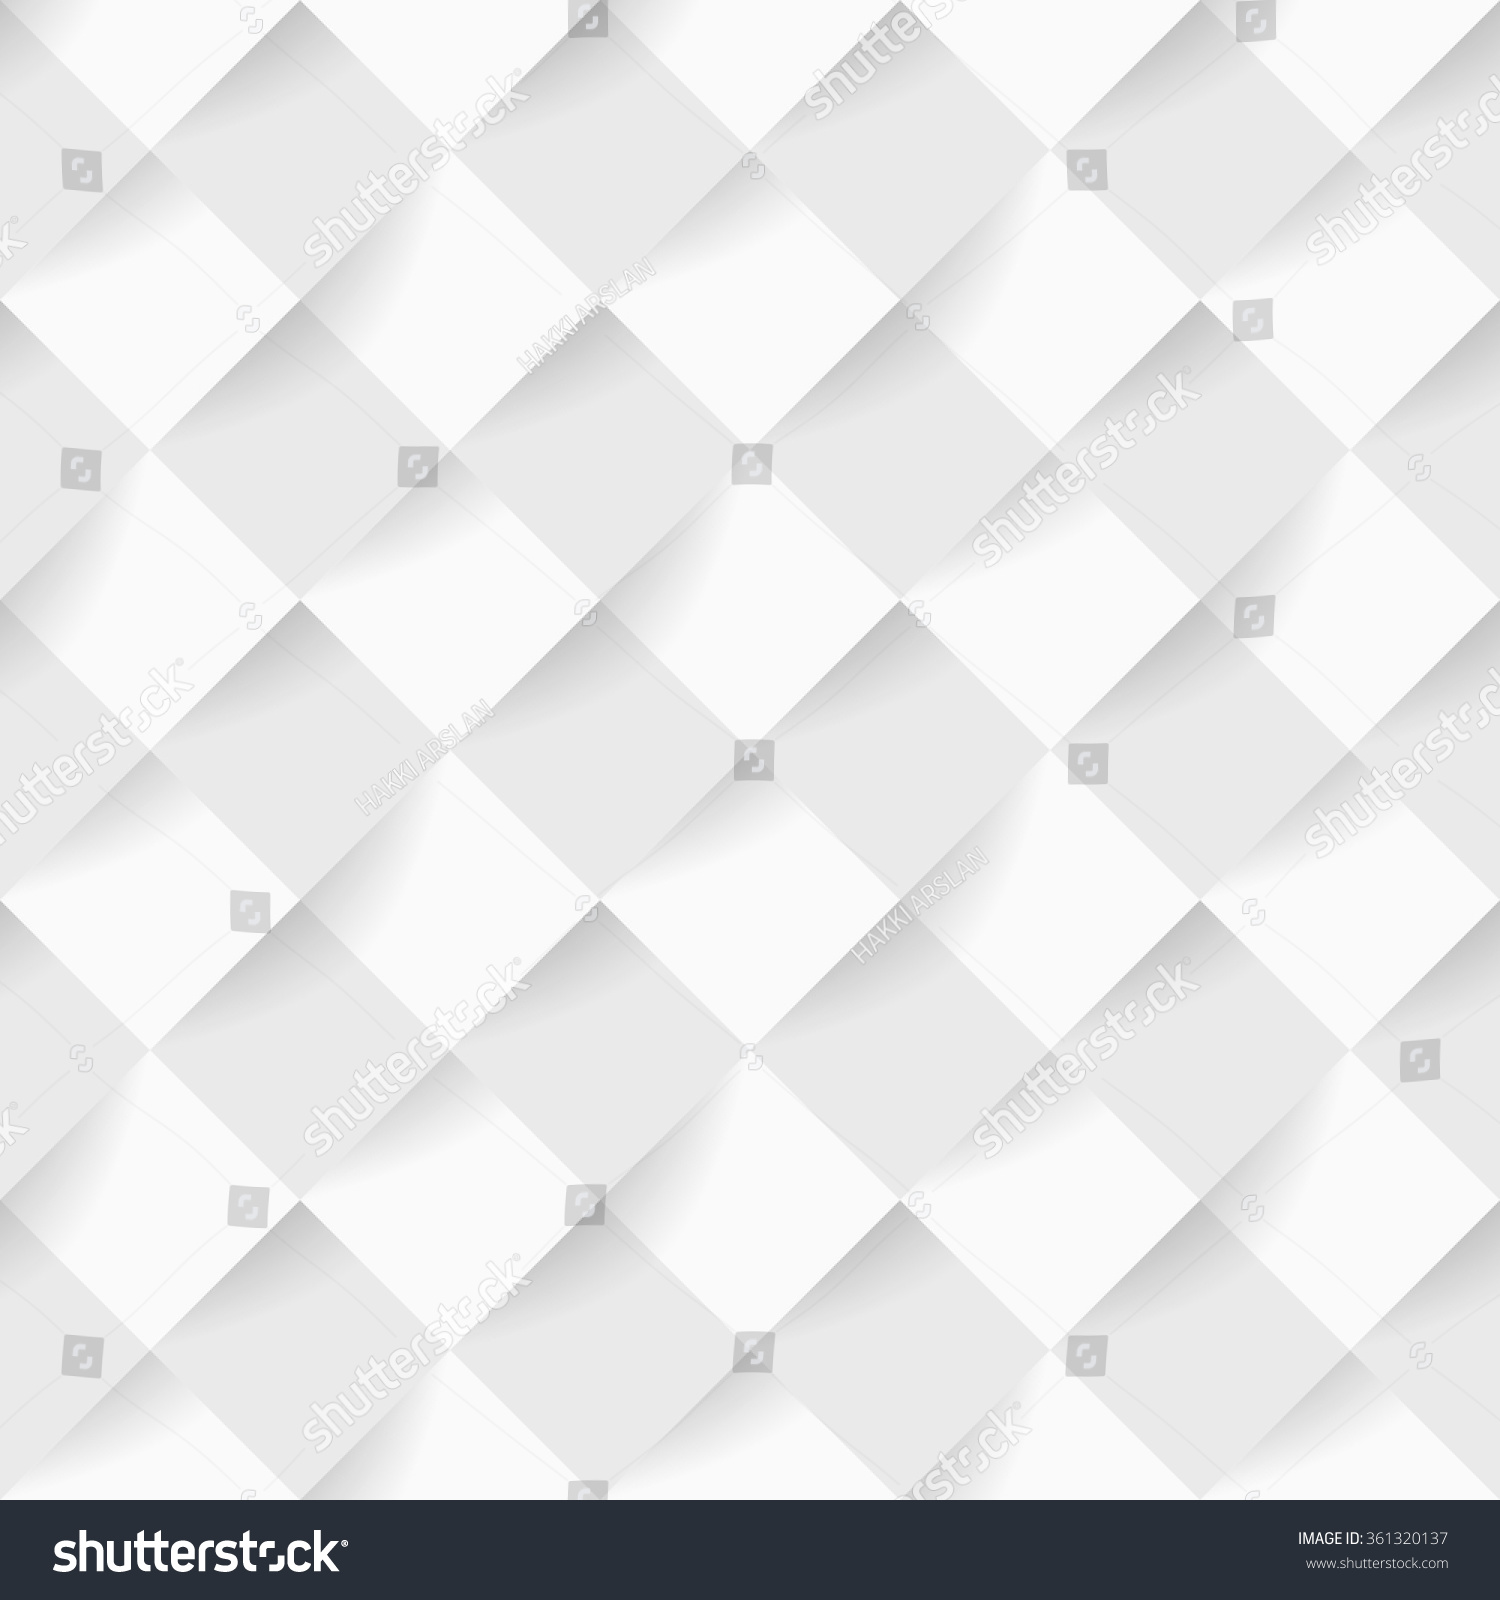 soft white square pattern wallpaper website or cover